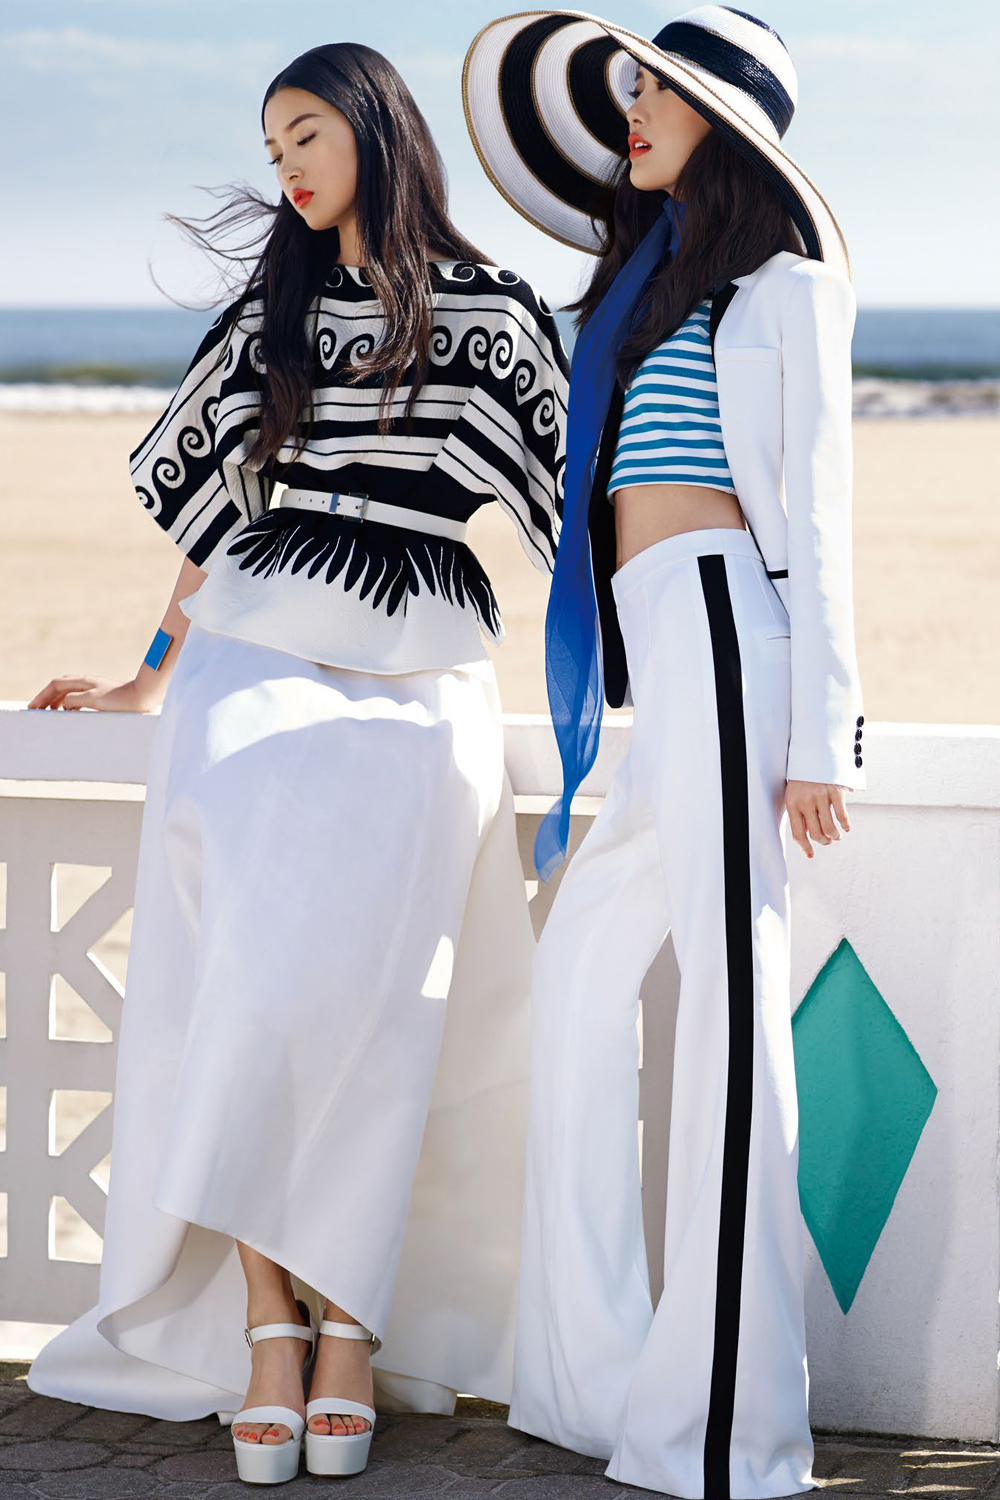 two women wearing nautical outfits are posing on the beach